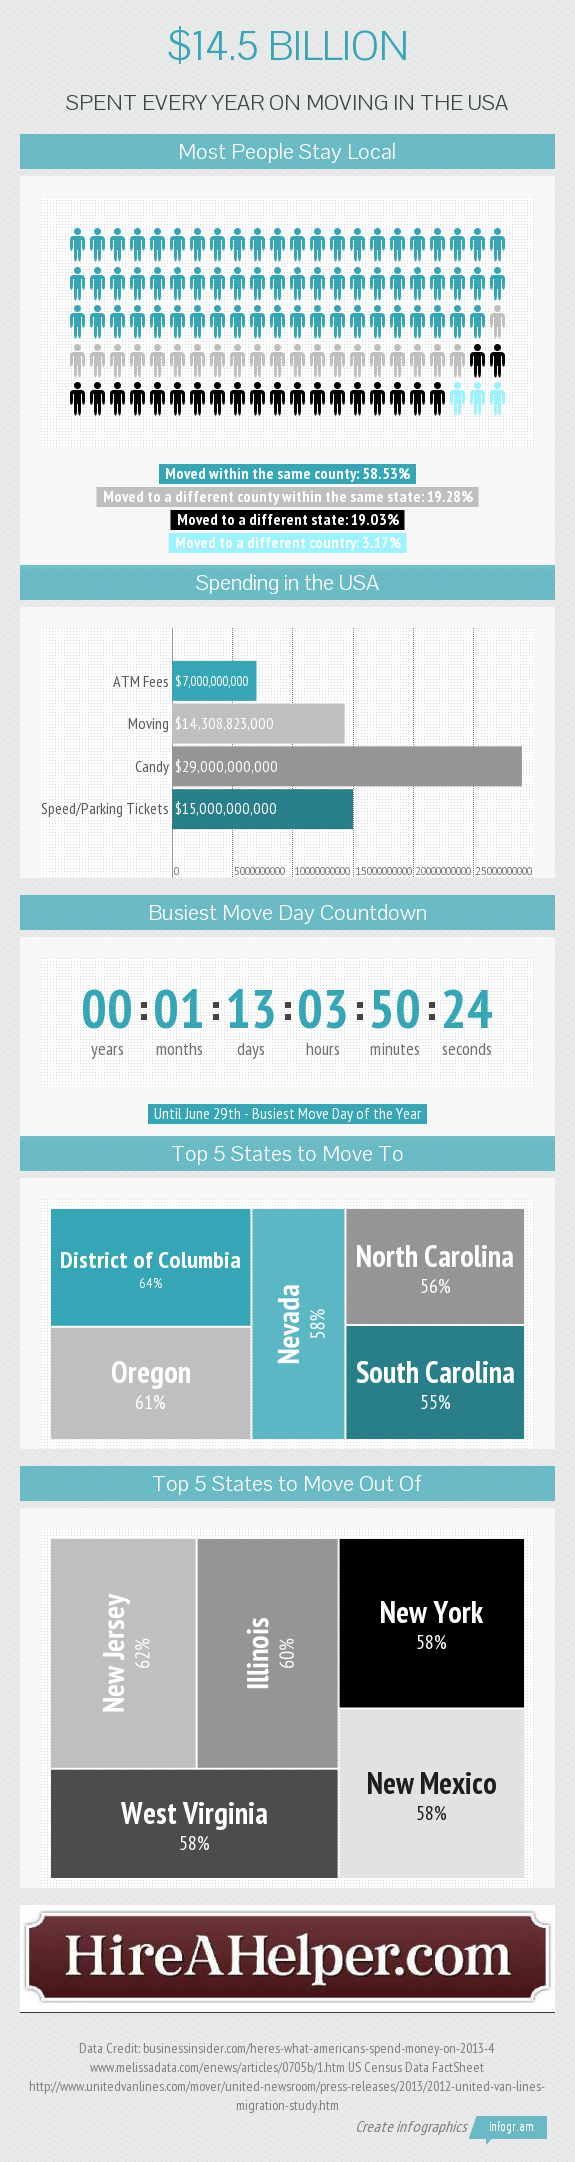 noid-summer-moving-infographic